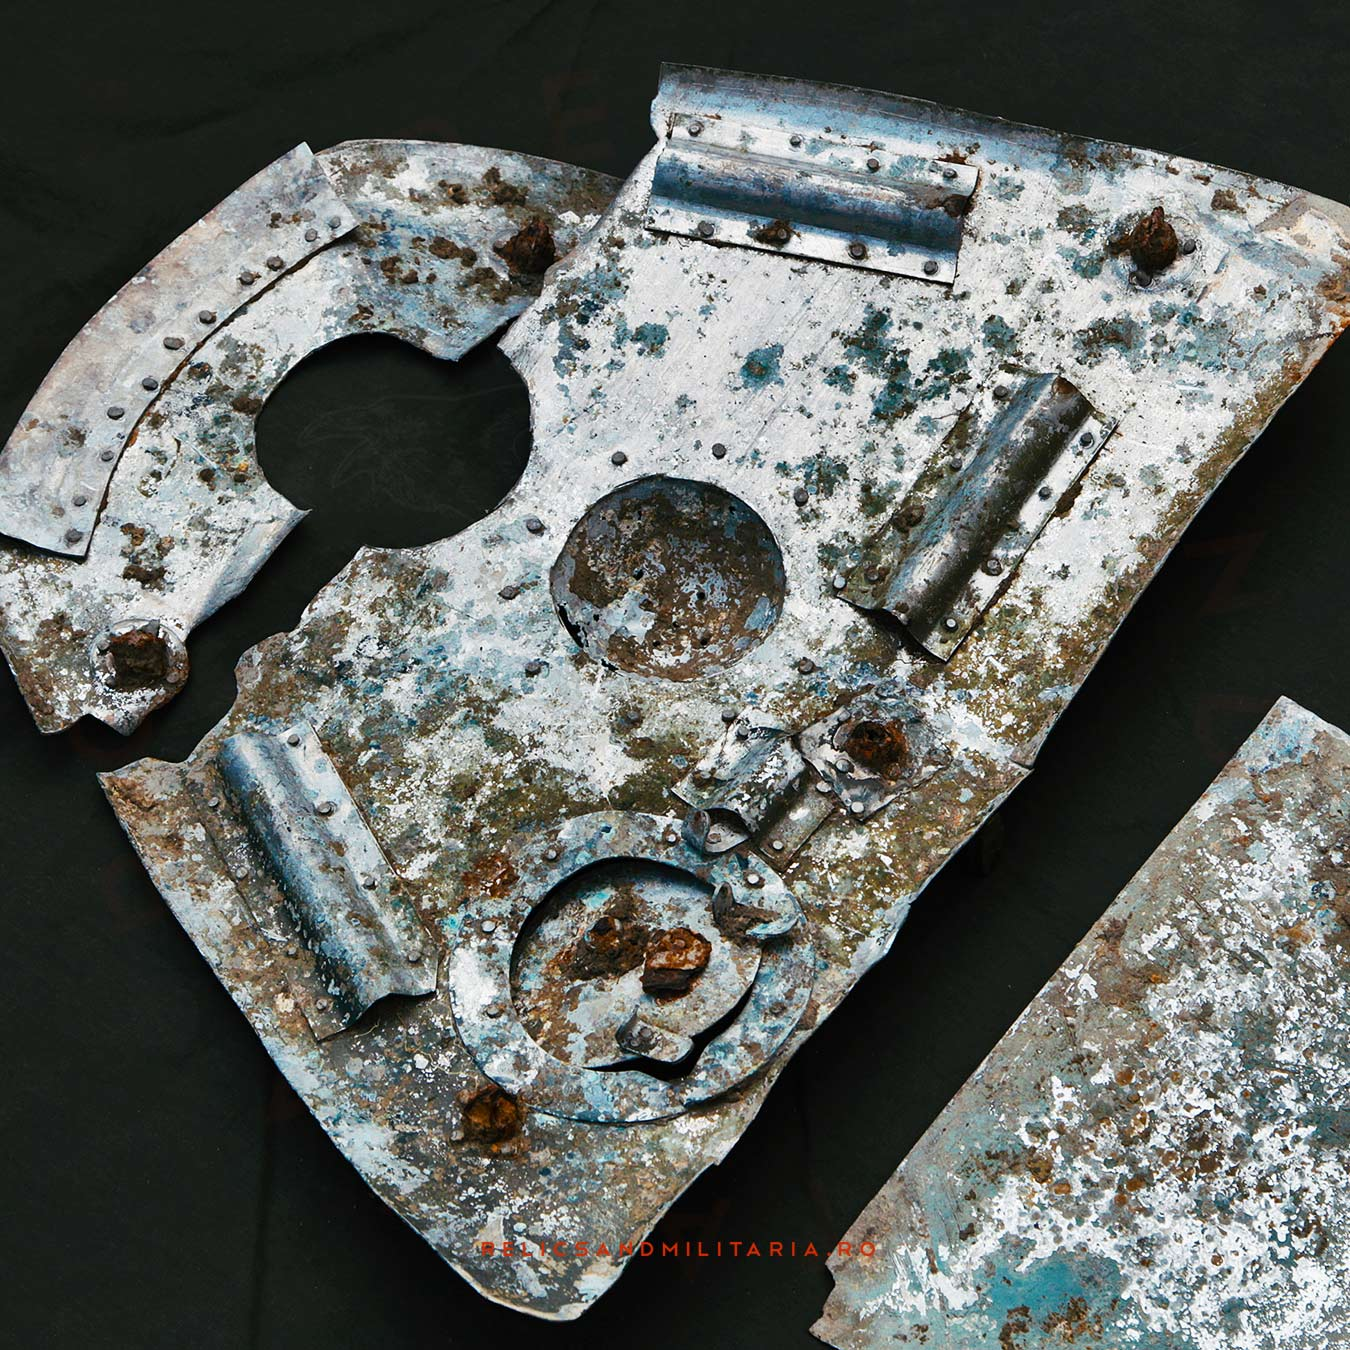 Ilyushin Il-2 Shturmovik relics found in Romania fallen in 1944 during Targu Frumos battle